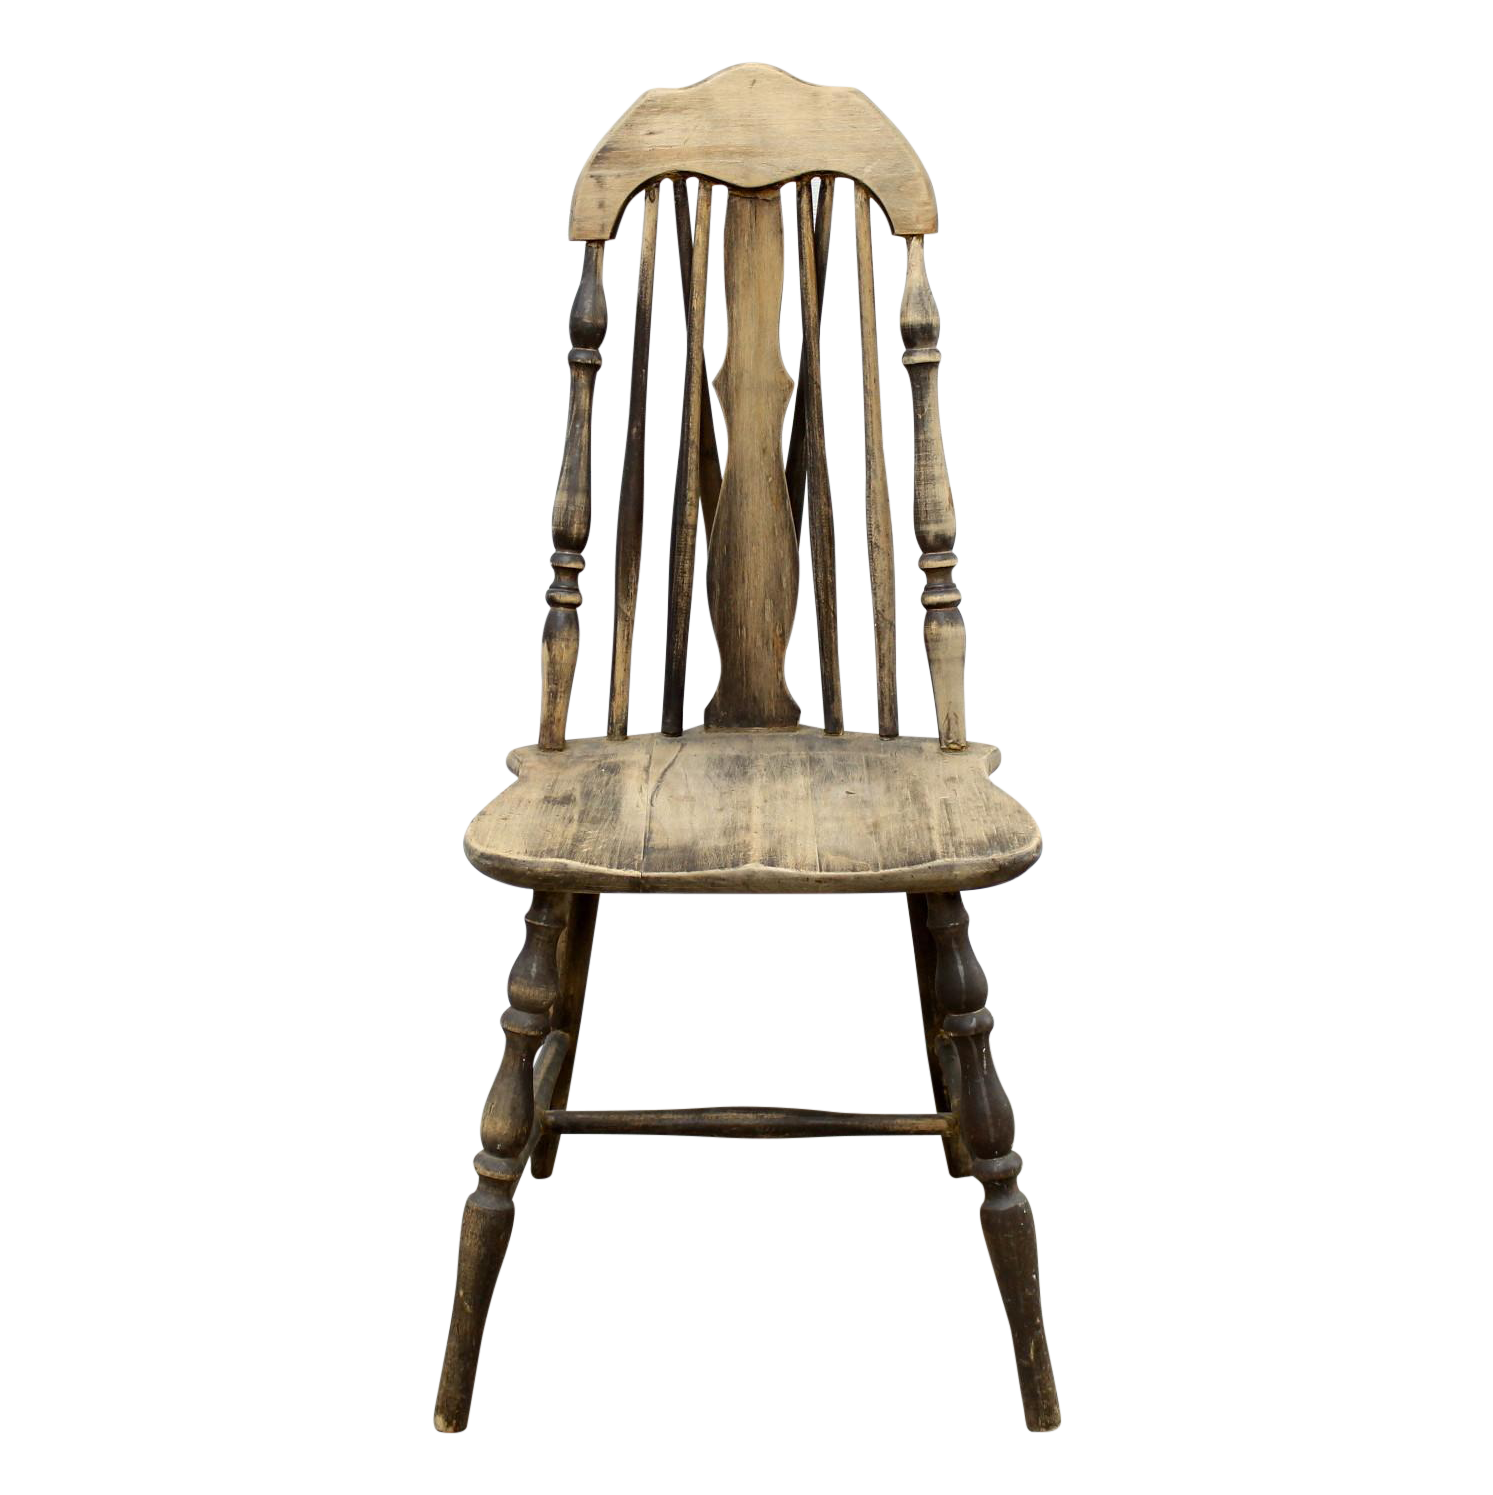 Antique wooden spindle chairs - Image Of Antique Splat Tapered Back Windsor Chair